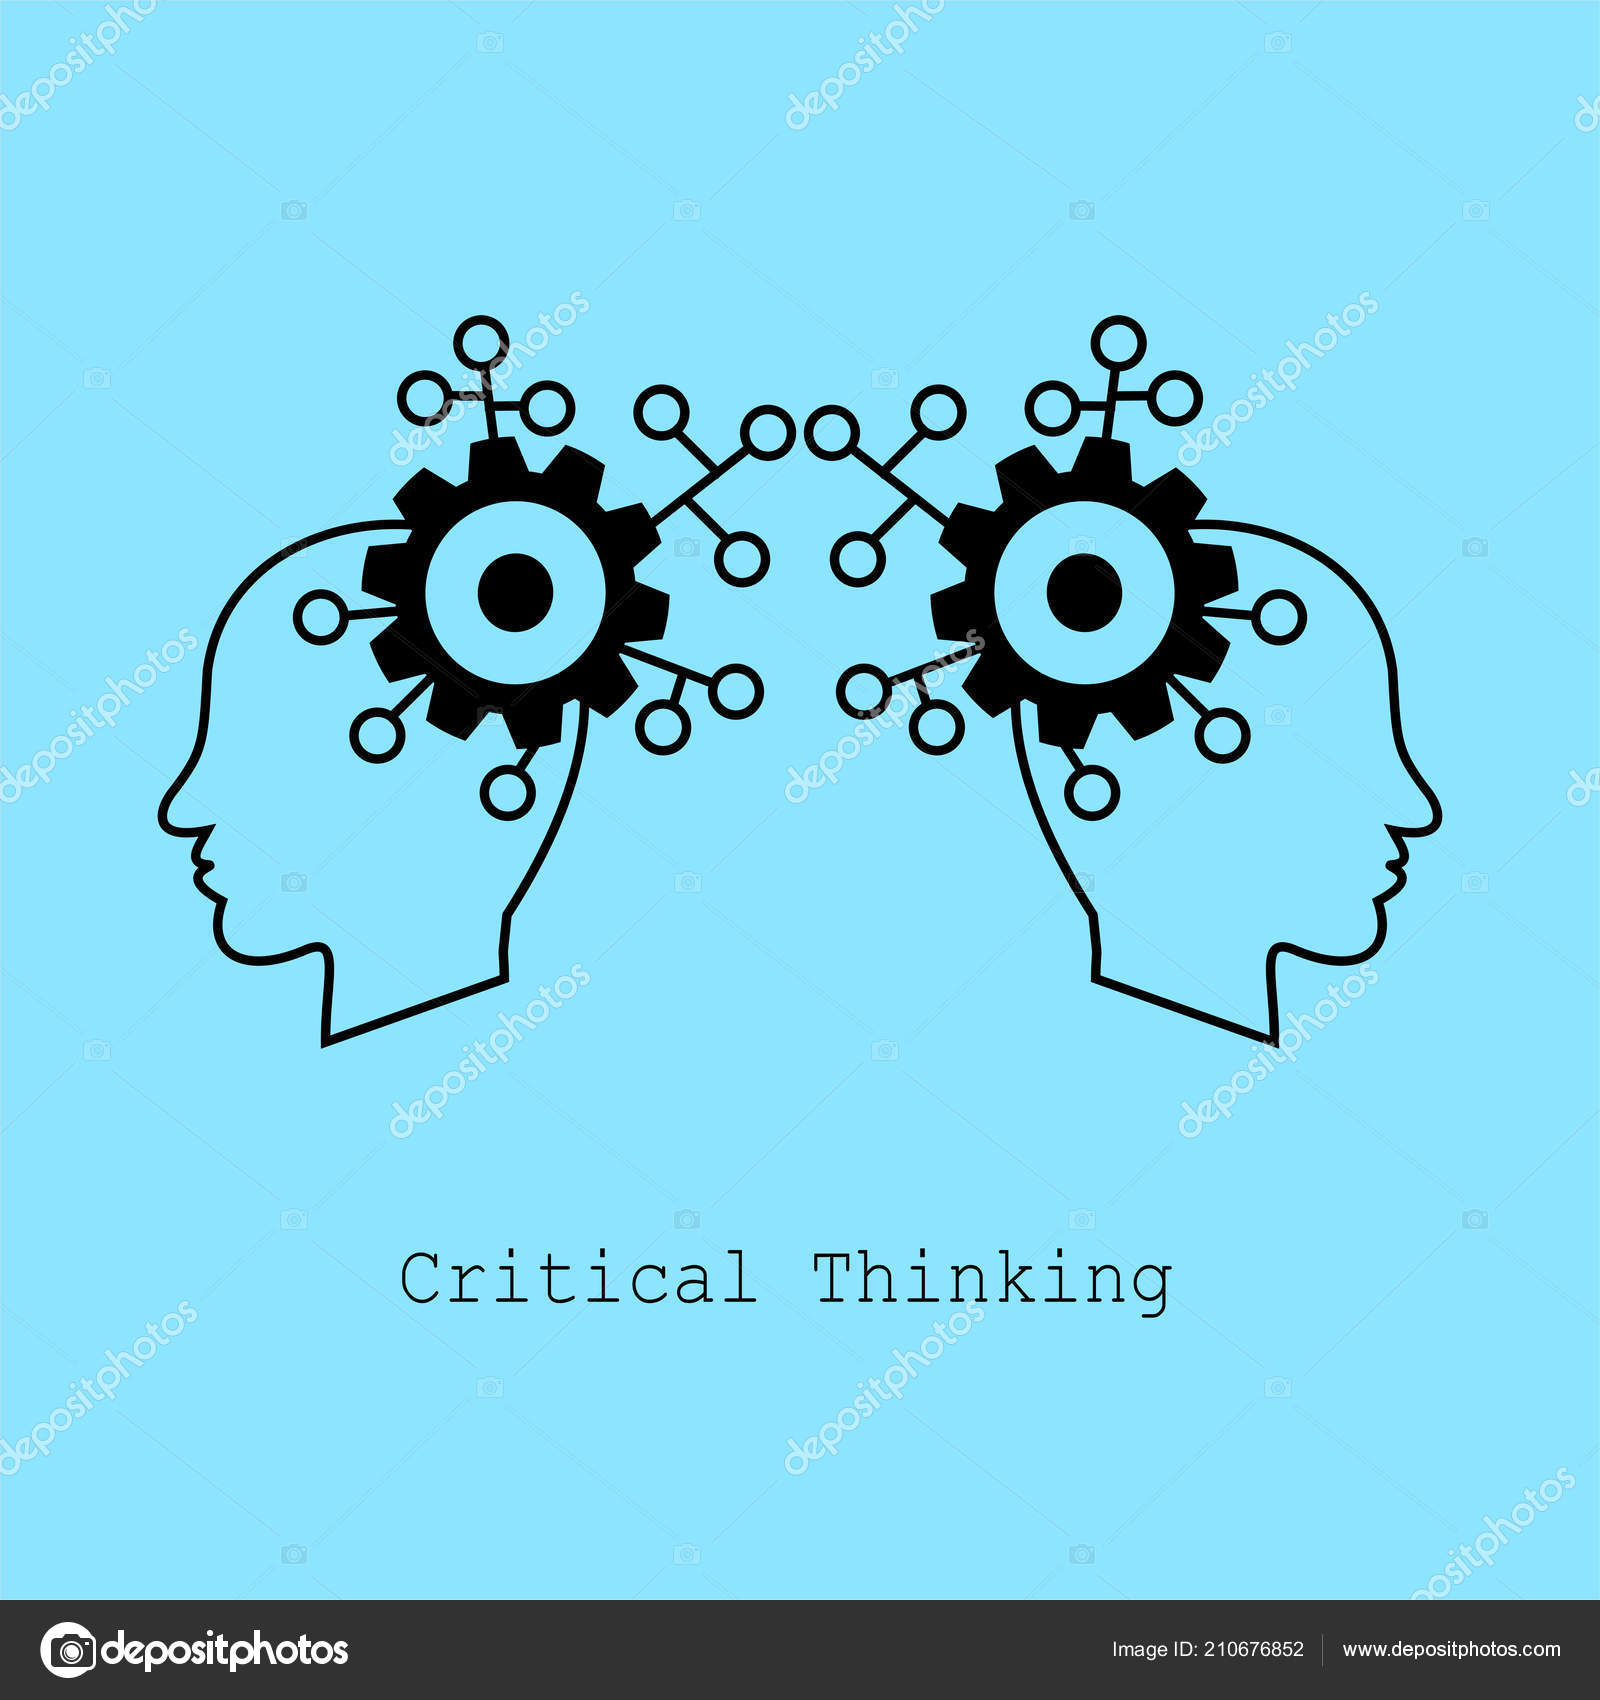 concept of critical thinking Critical thinking is the process of independently analyzing, synthesizing, and evaluating information as a guide to behavior and beliefs the american philosophical association has defined critical thinking as the process of purposeful, self-regulatory judgment.